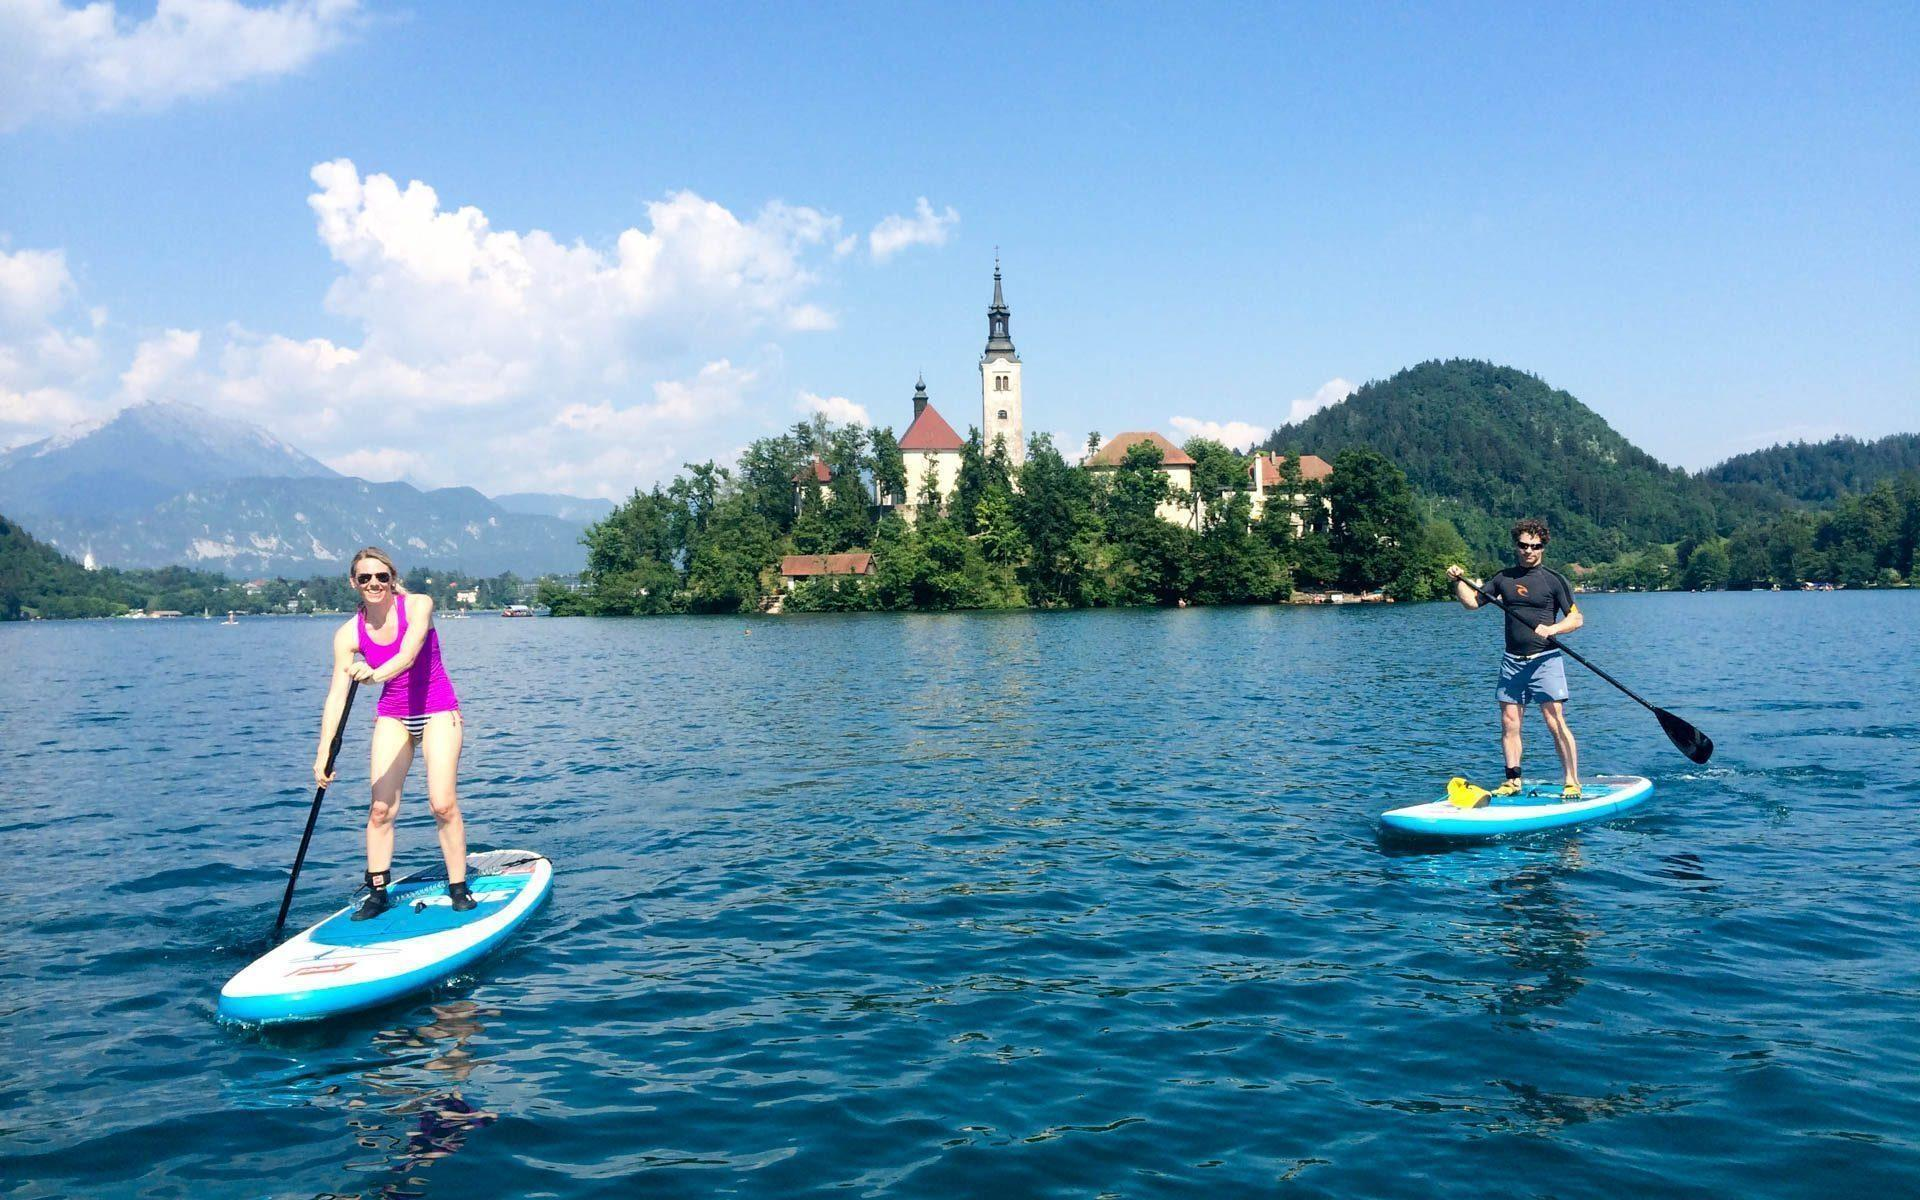 Lake Island stand-up paddleboarding tour to Island Bled